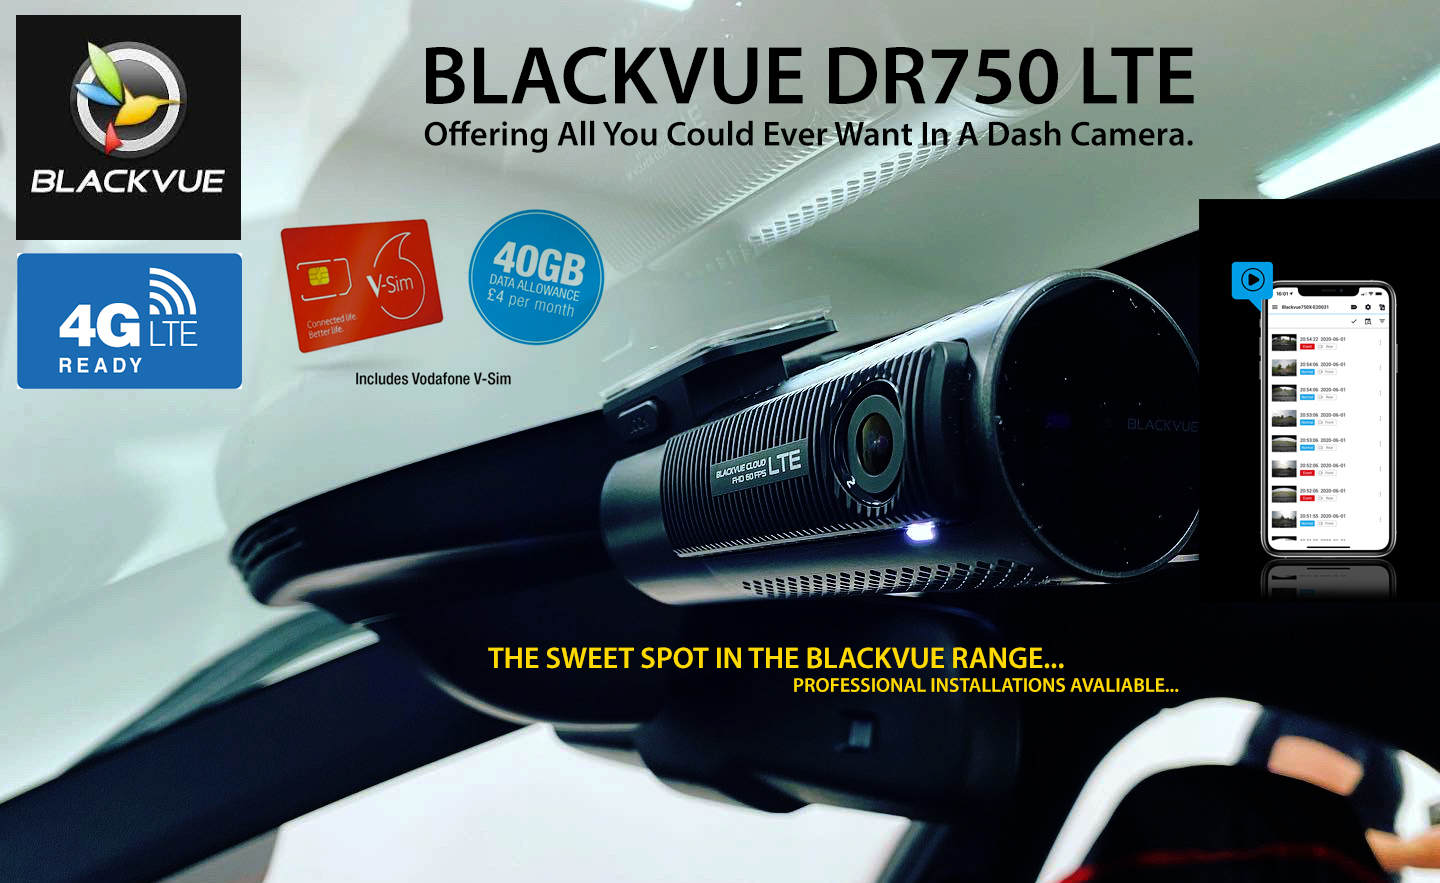 Blackvue DR750 LTE - Ultimate Dash camera With Cloud